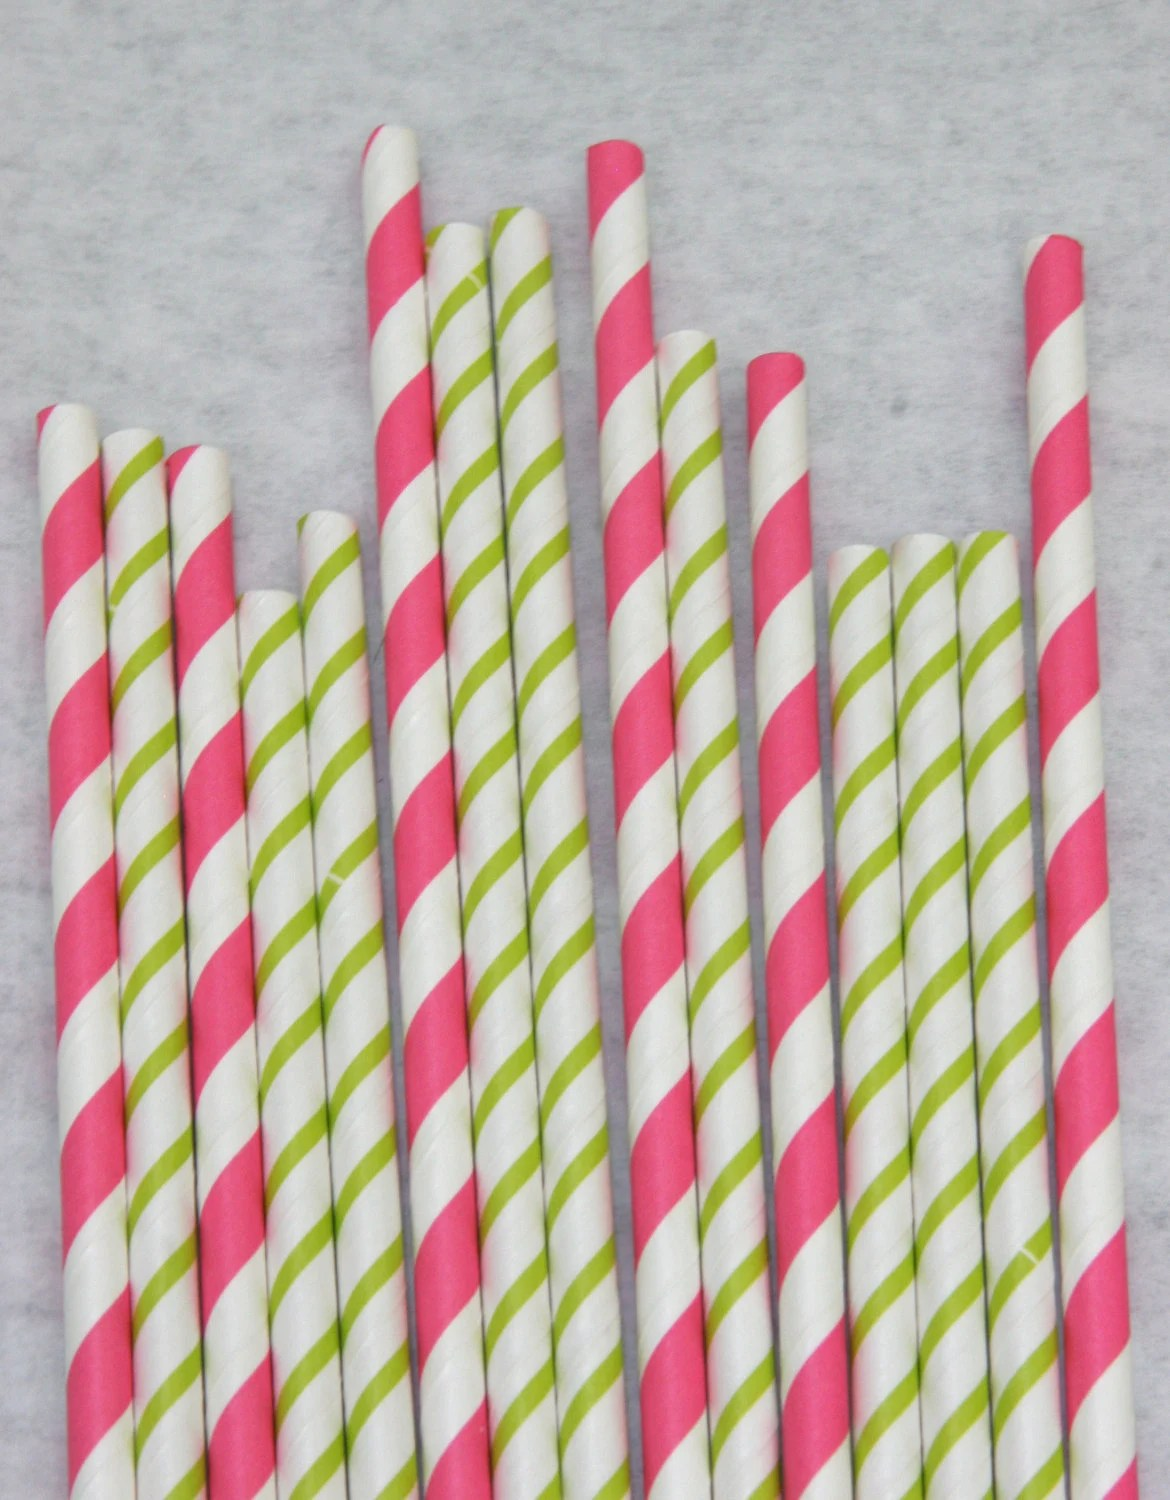 Hot Pink and Bright Green Paper Straws, Pack of 50, Vera Bradley-esque, Skinny Stripe